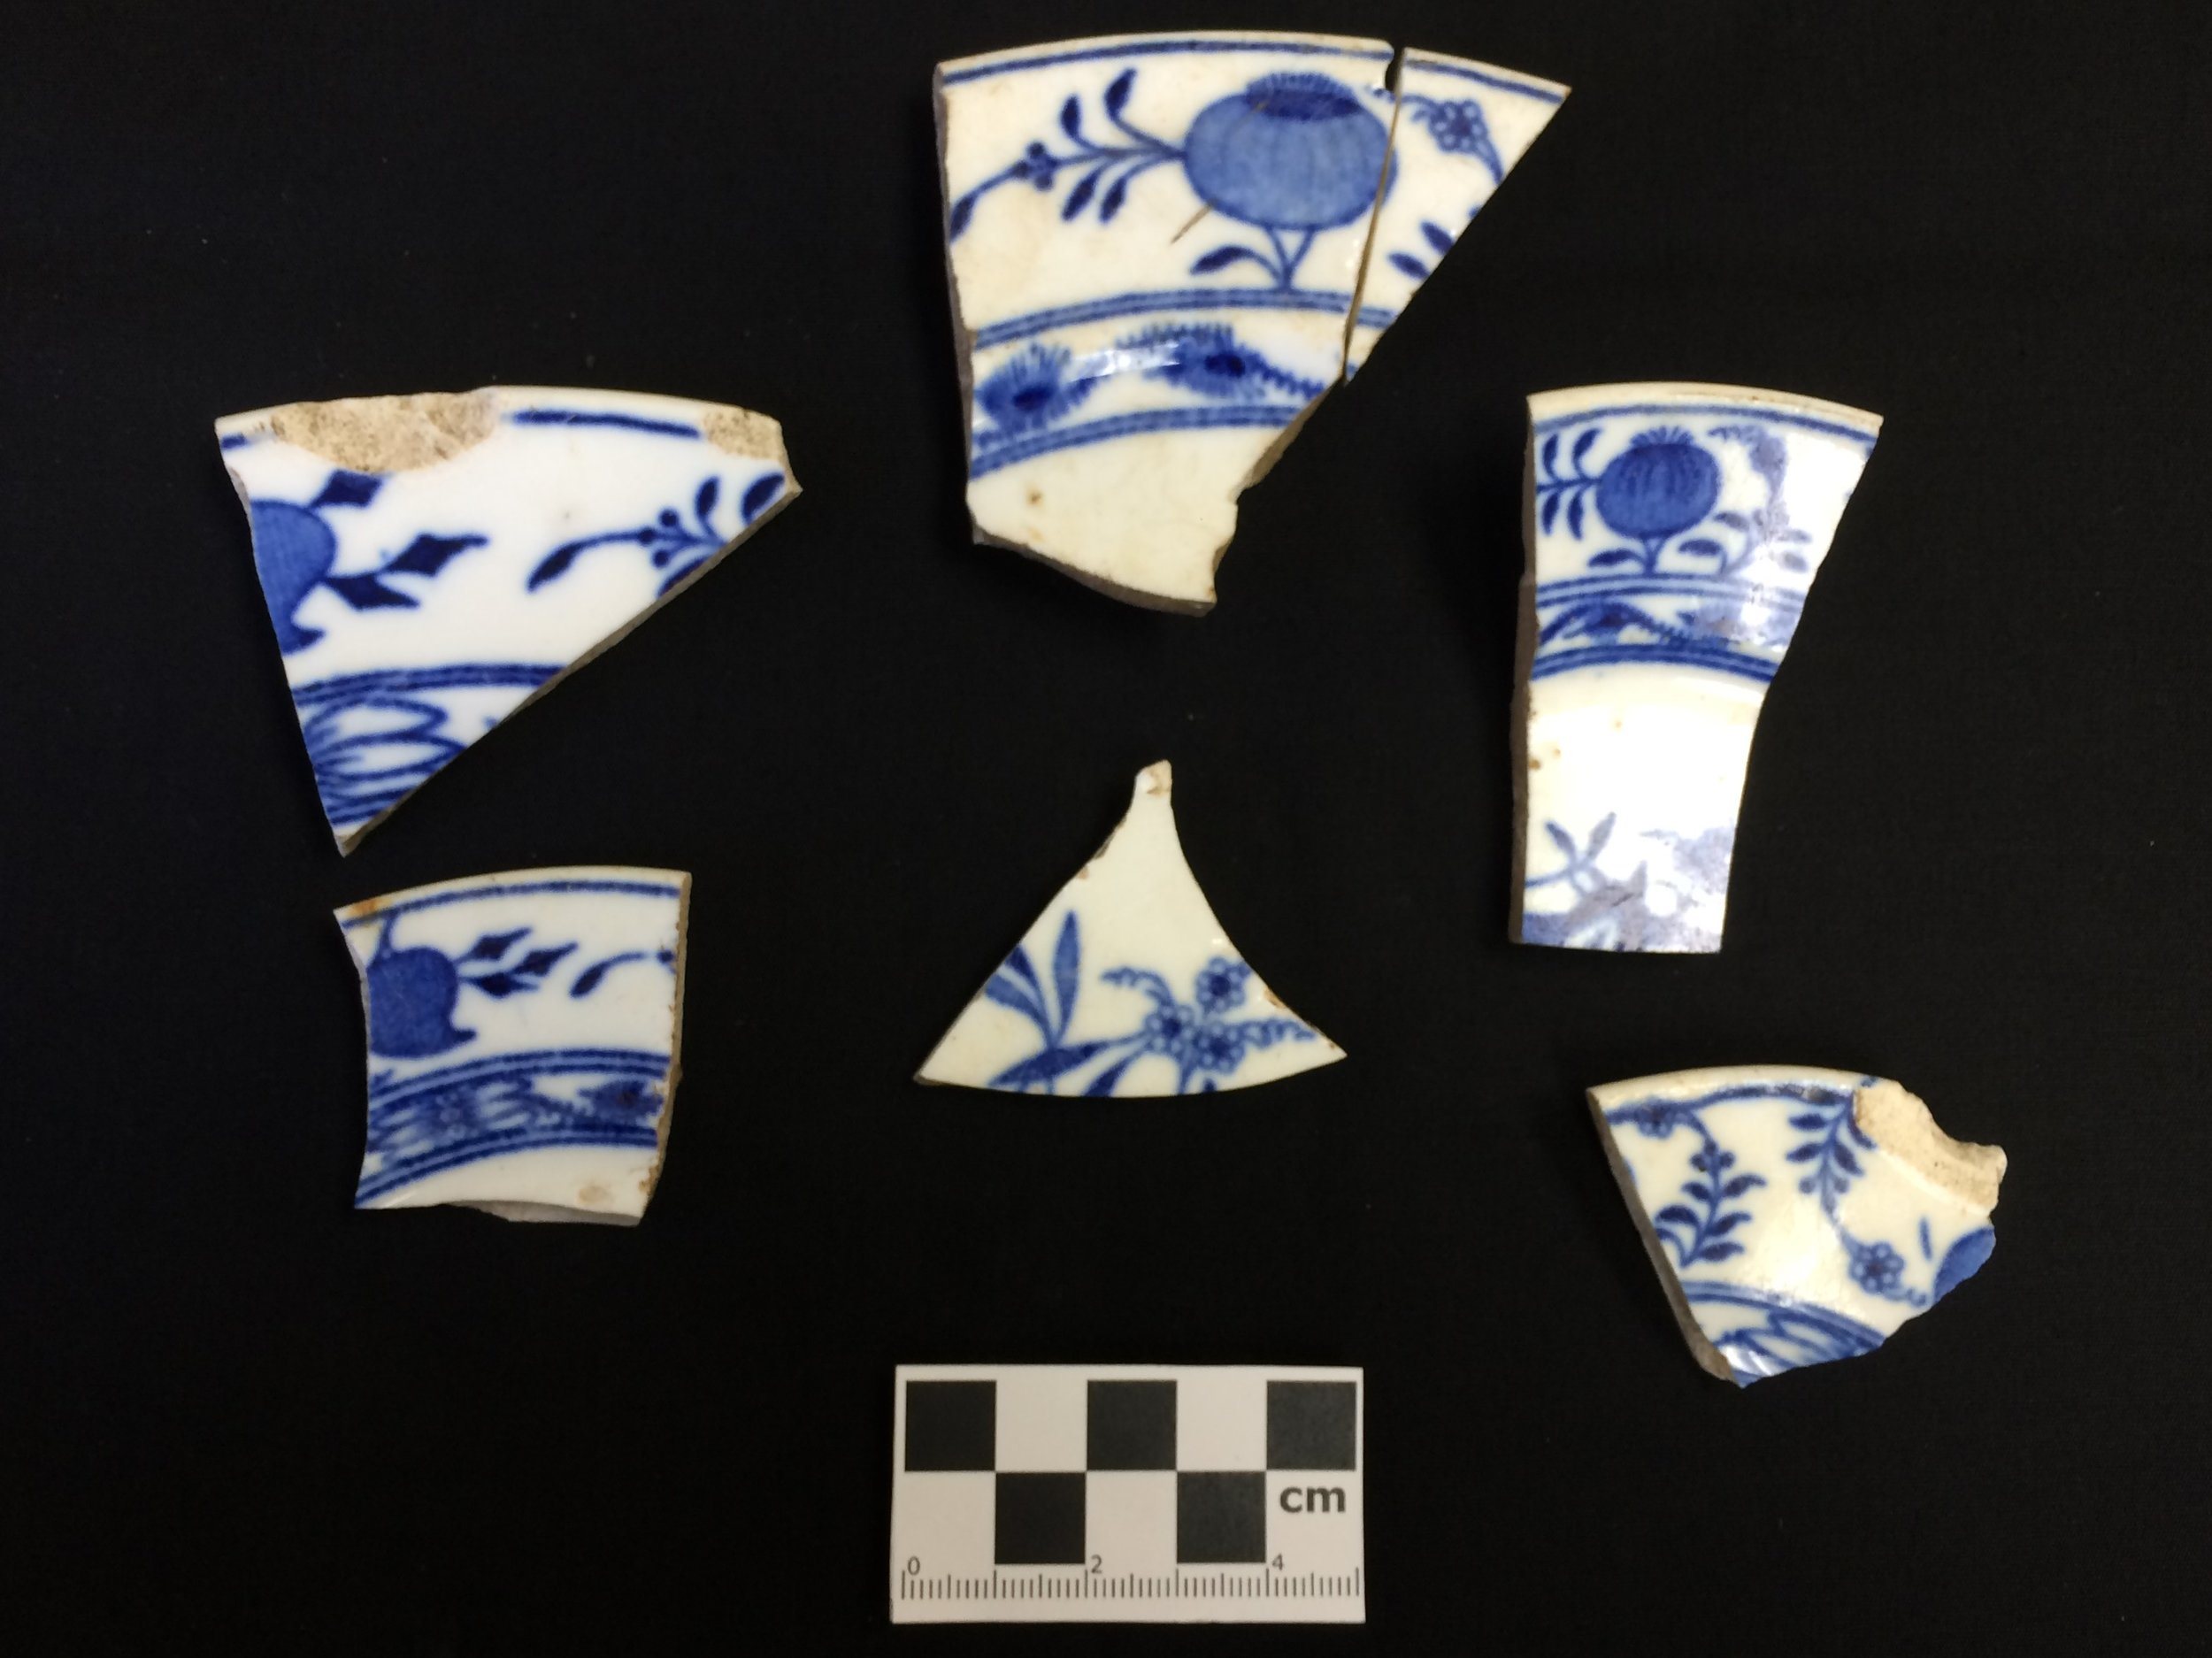 Some onion patterned ceramic fragments recovered on a wintry project not far from downtown Saratoga Springs.